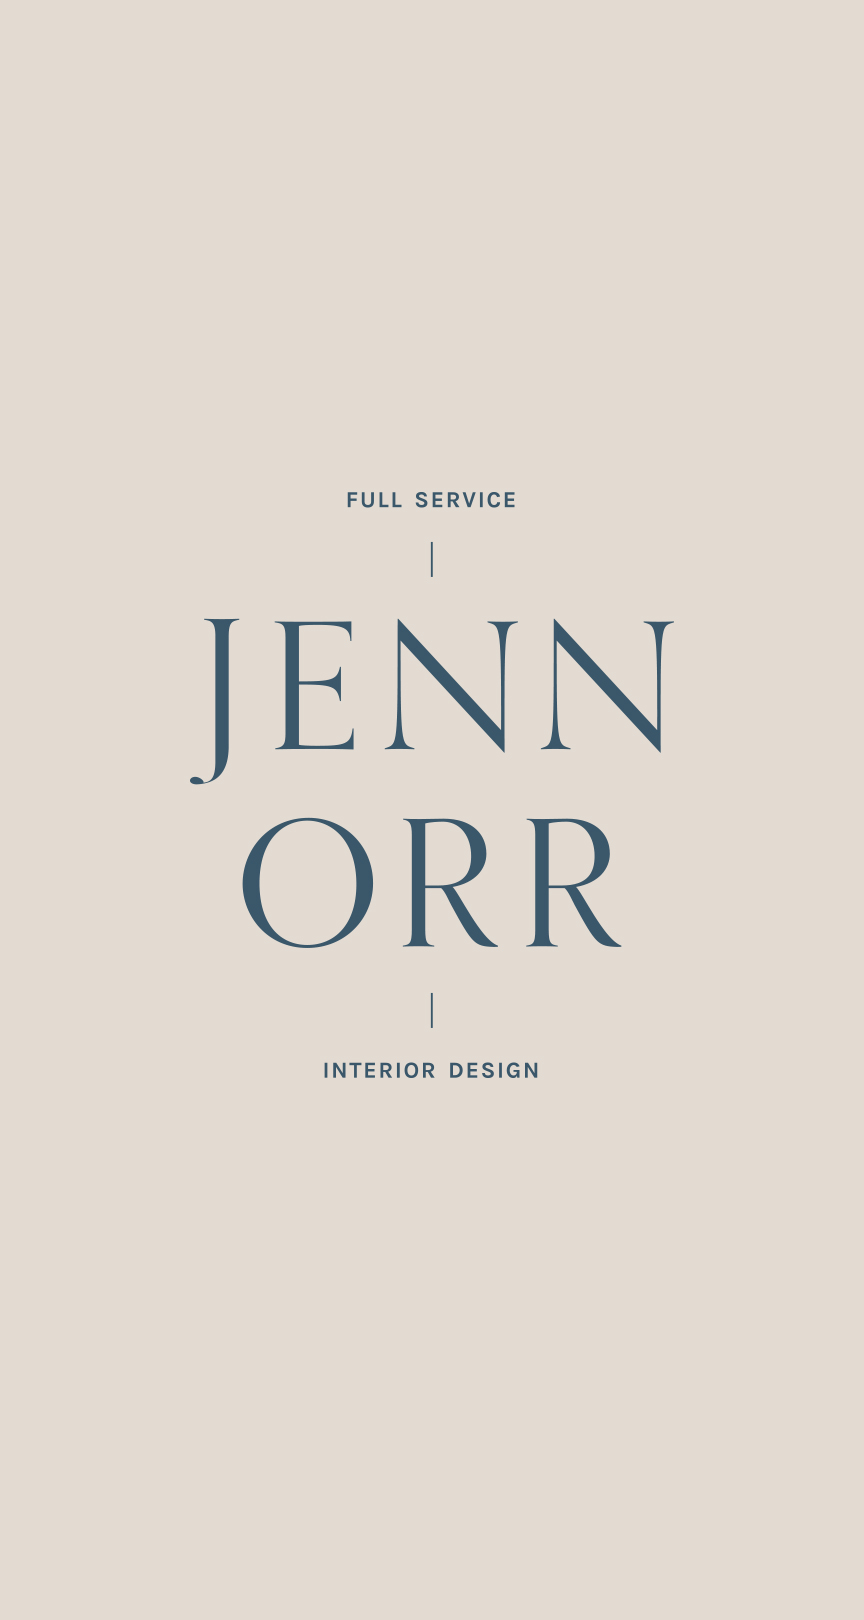 logo designs | Timeless, Classic, Neutral brand design for interior designer | by Reux Design Co.